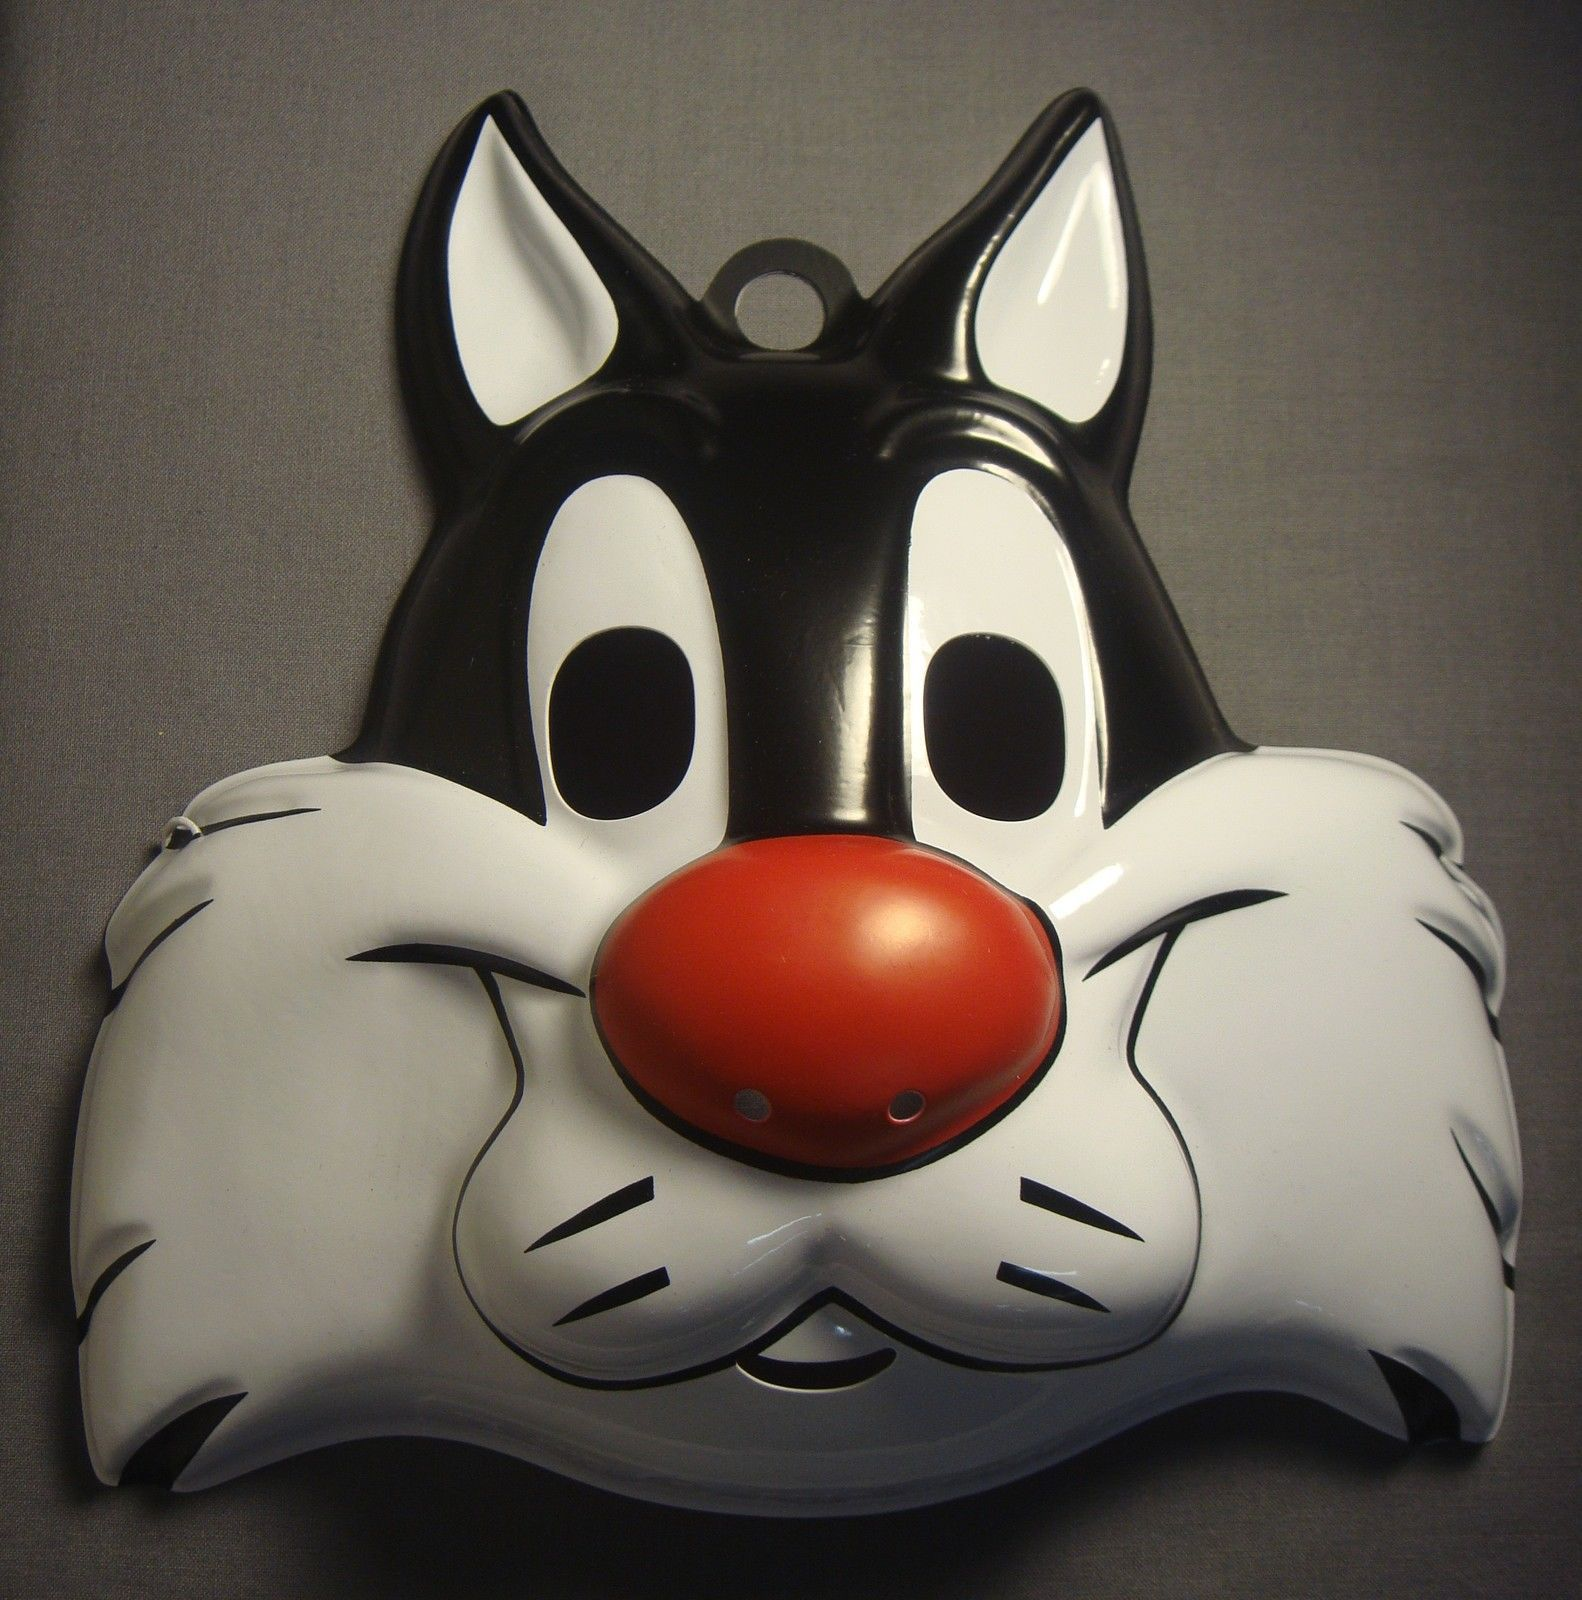 Sylvester Cat PVC Mask Looney Tunes Fancy Dress Up Halloween Costume Accessory